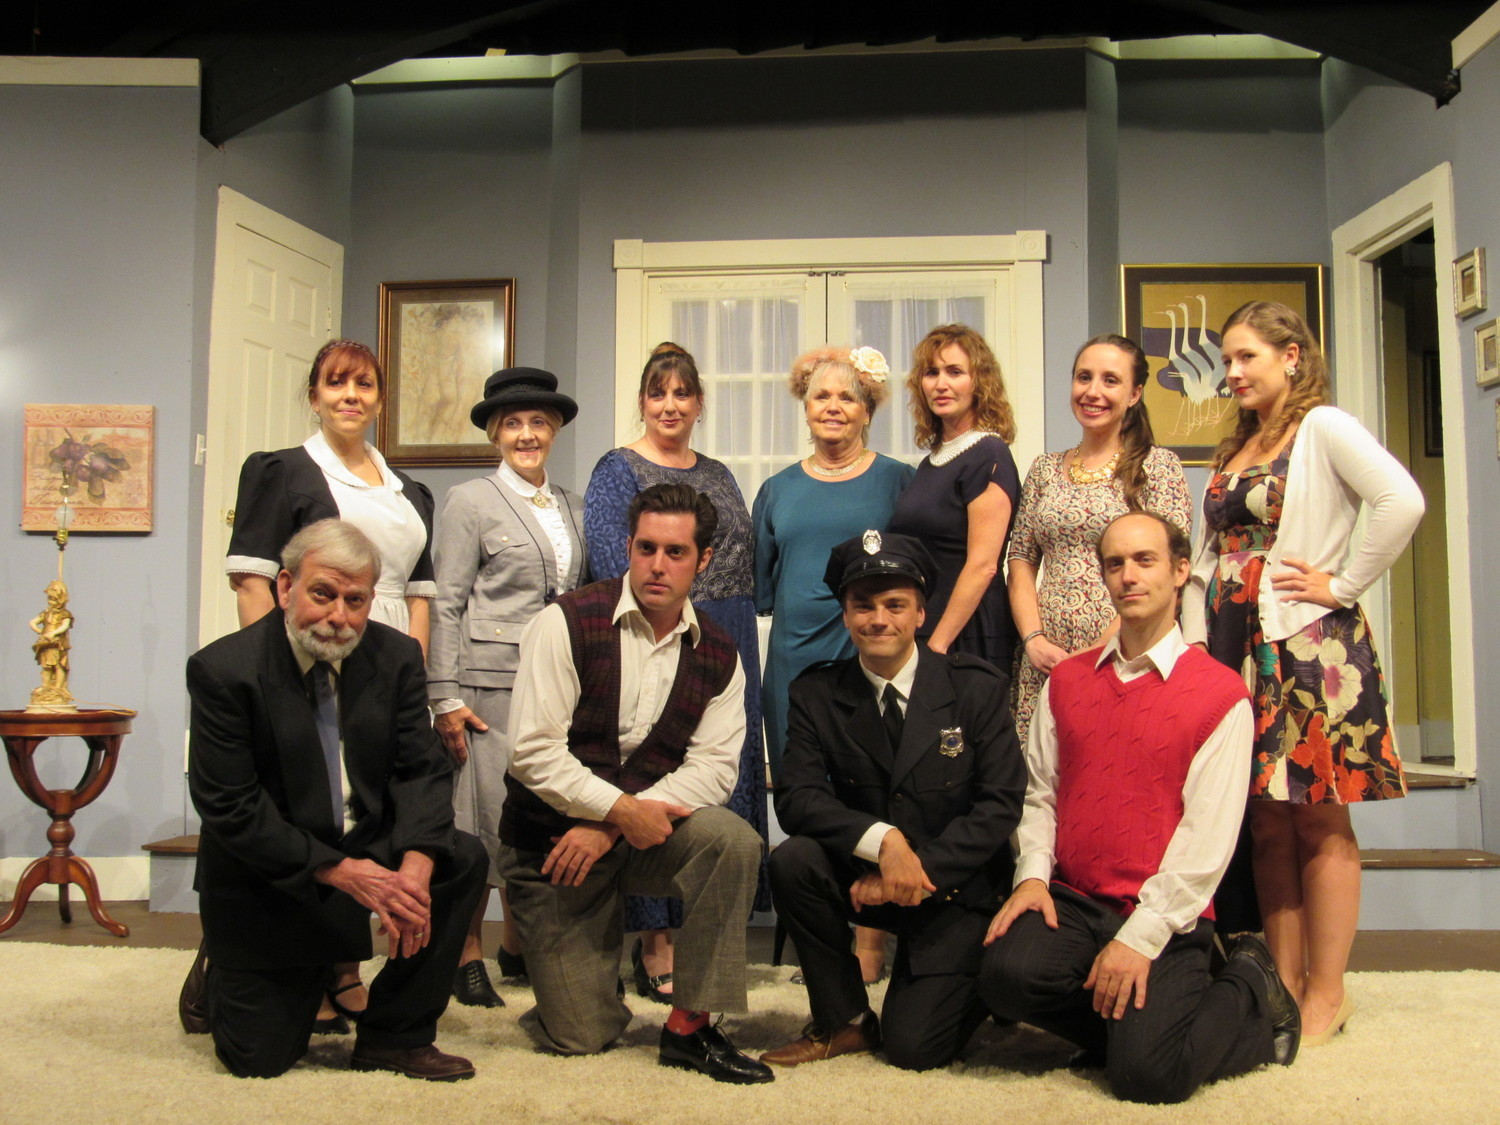 BWW Review: A MURDER IS ANNOUNCED at Granite Theatre